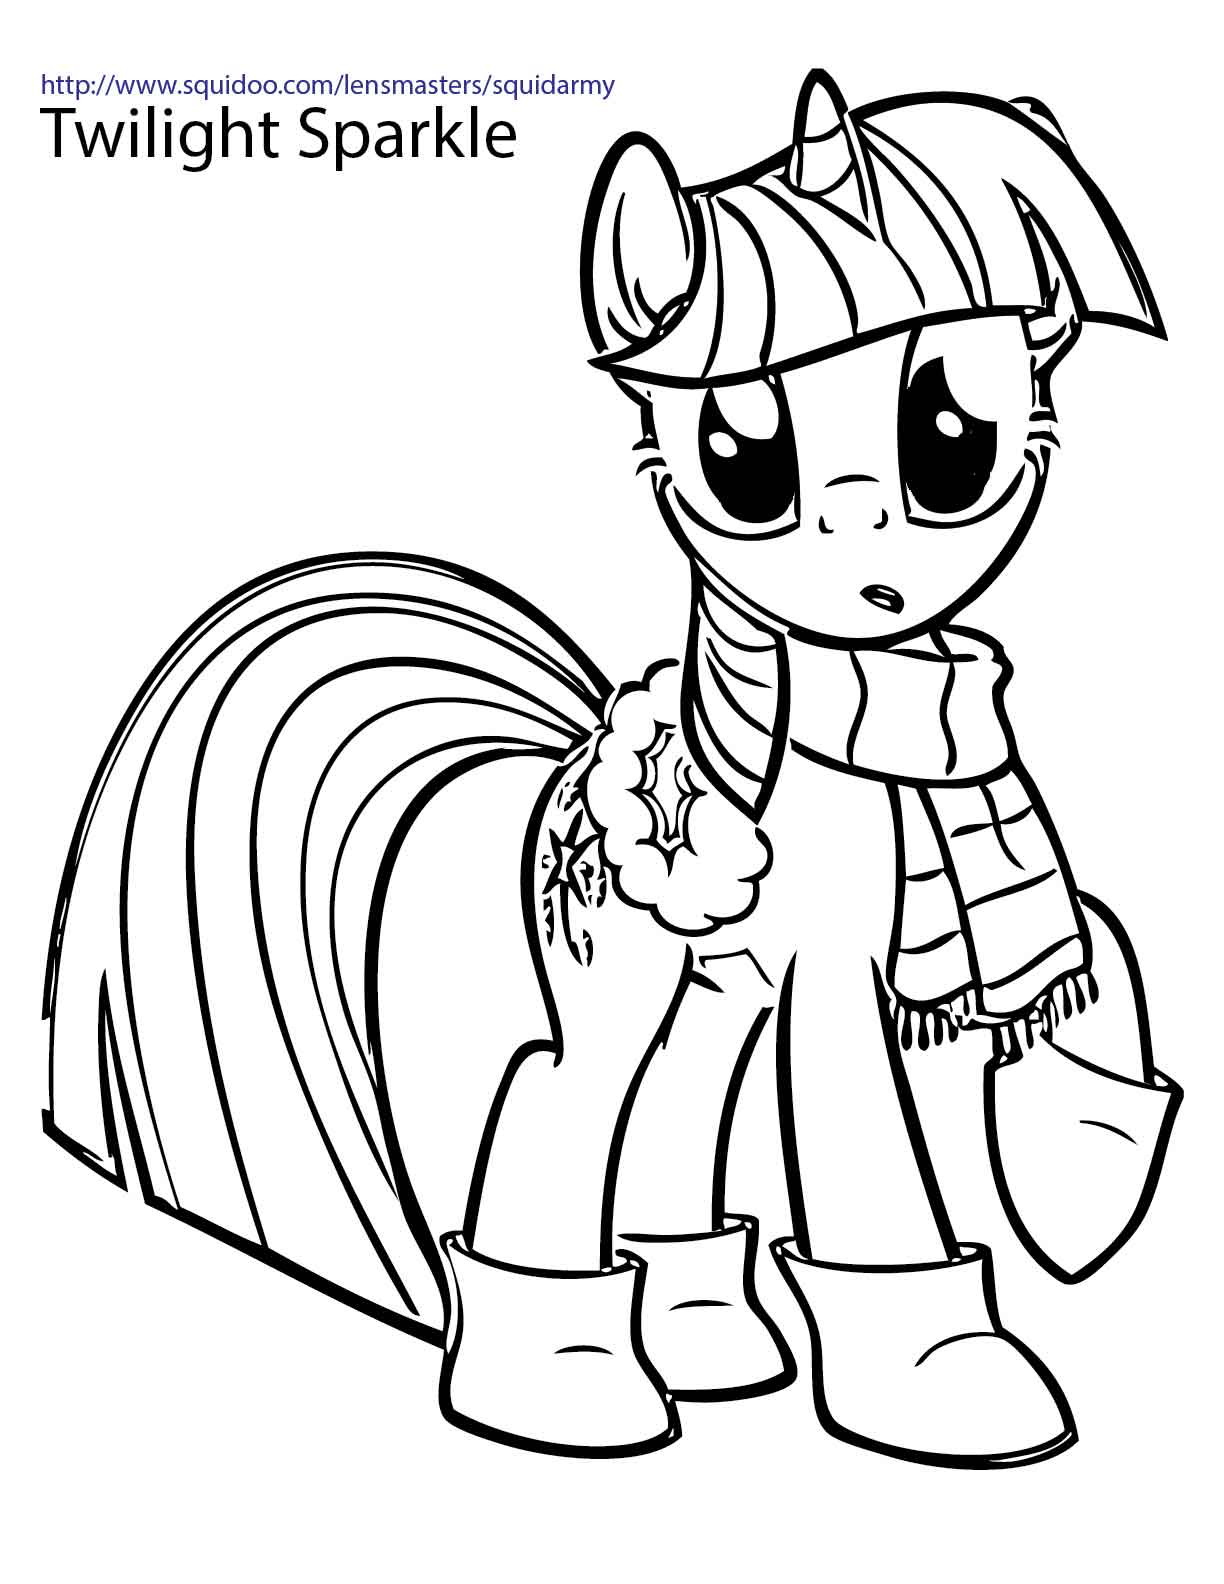 mlp coloring free printable my little pony coloring pages for kids mlp coloring